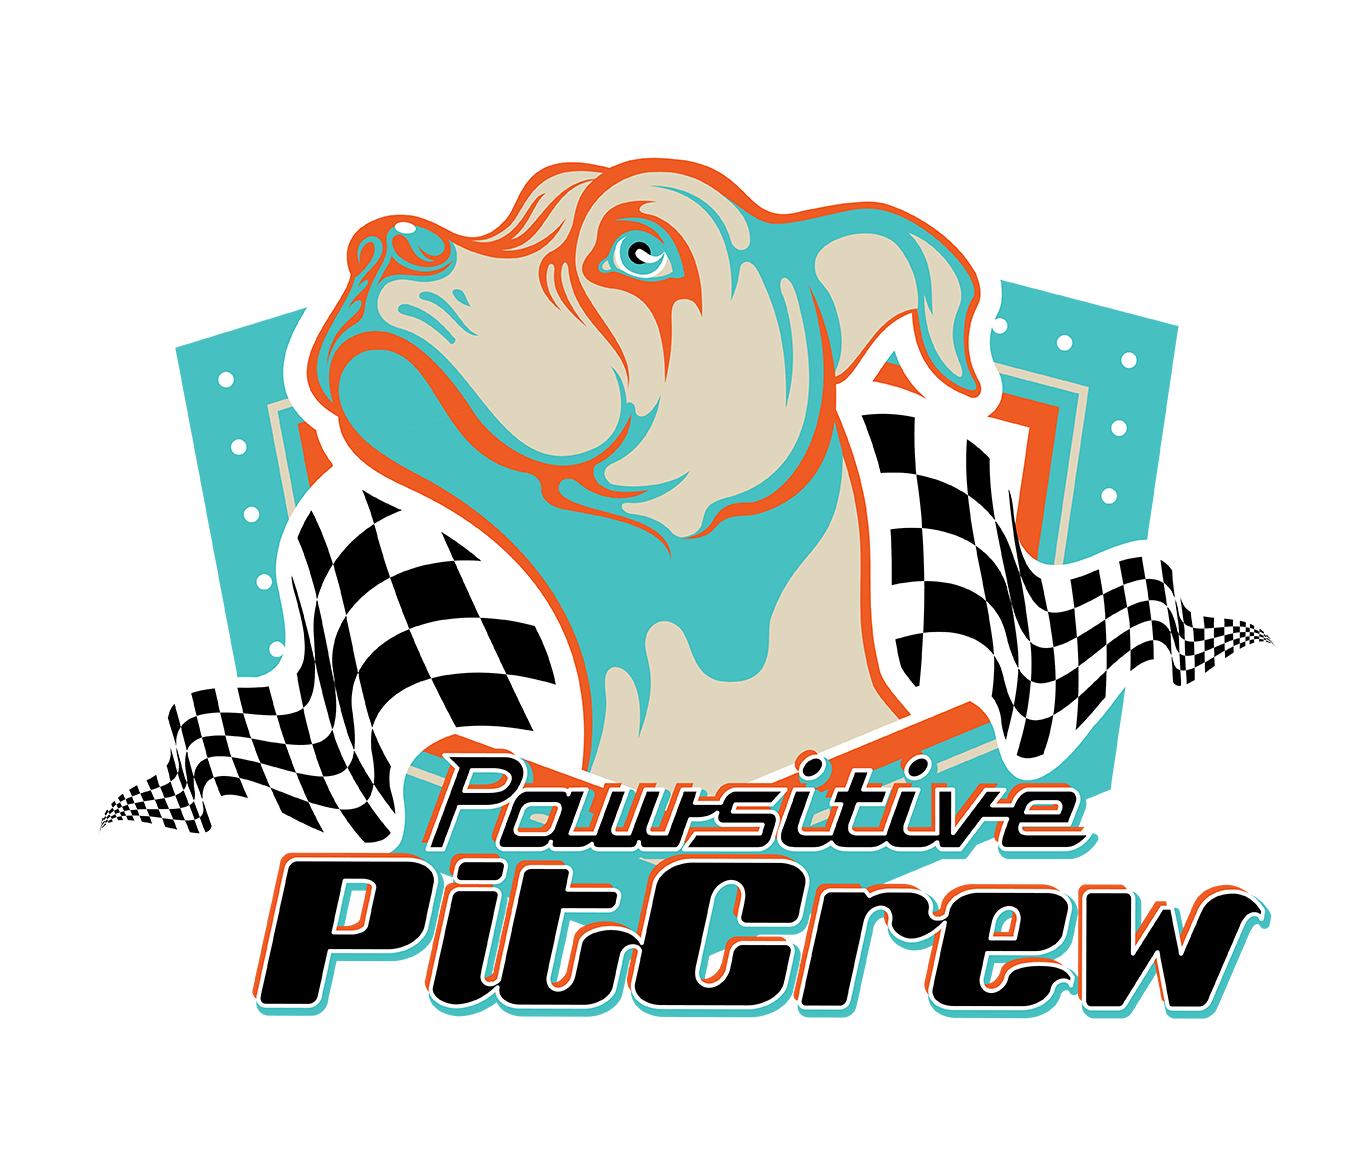 pawsitivepitcrew-01